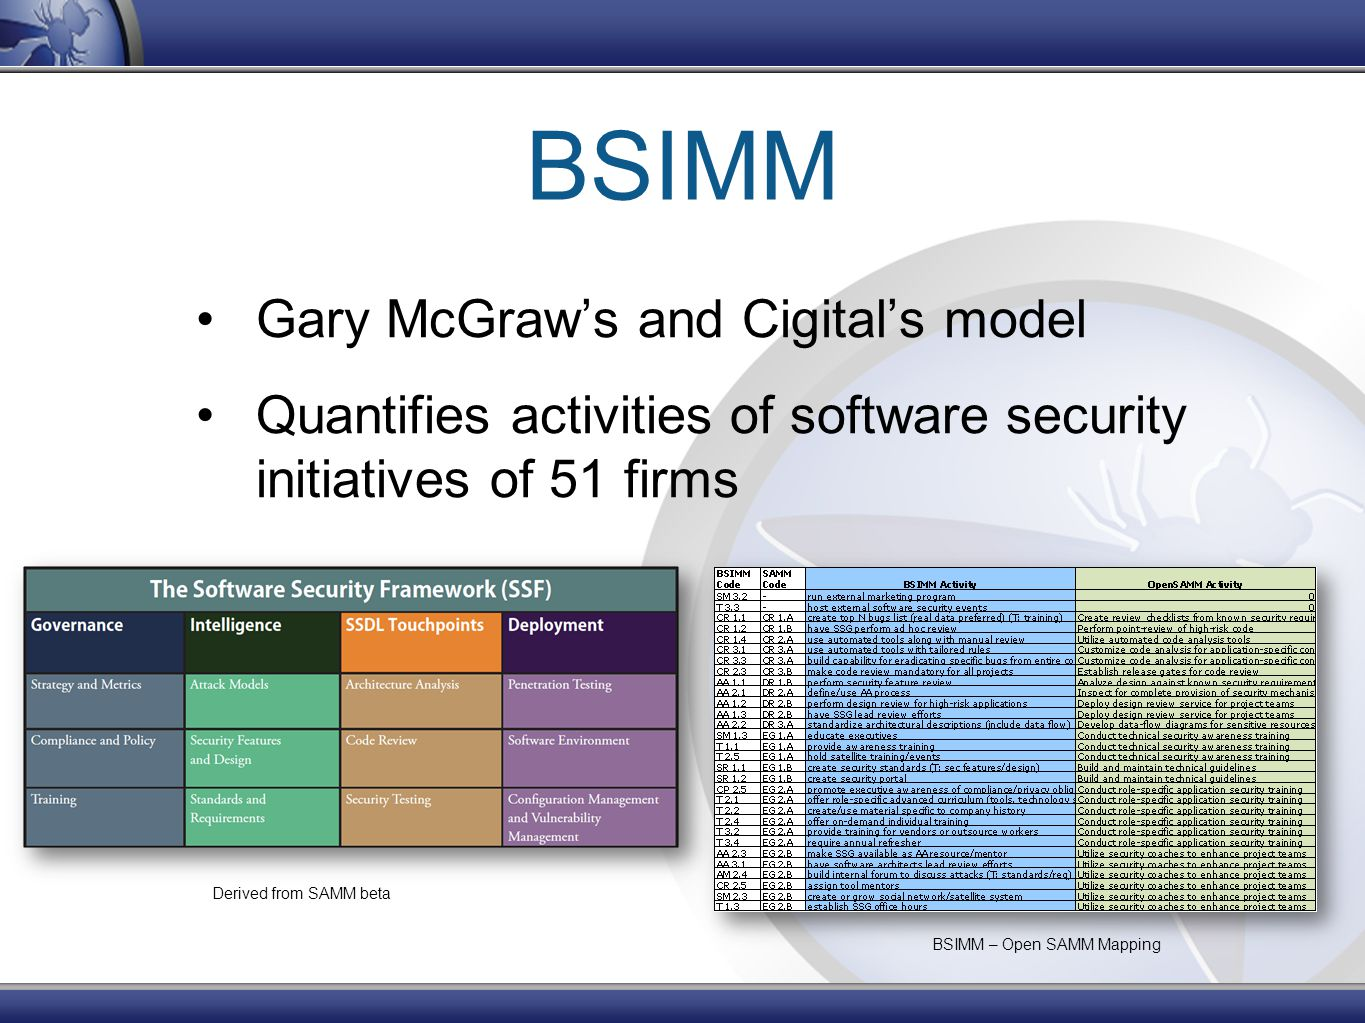 BSIMM Gary McGraw's and Cigital's model Quantifies activities of software security initiatives of 51 firms BSIMM – Open SAMM Mapping Derived from SAMM beta